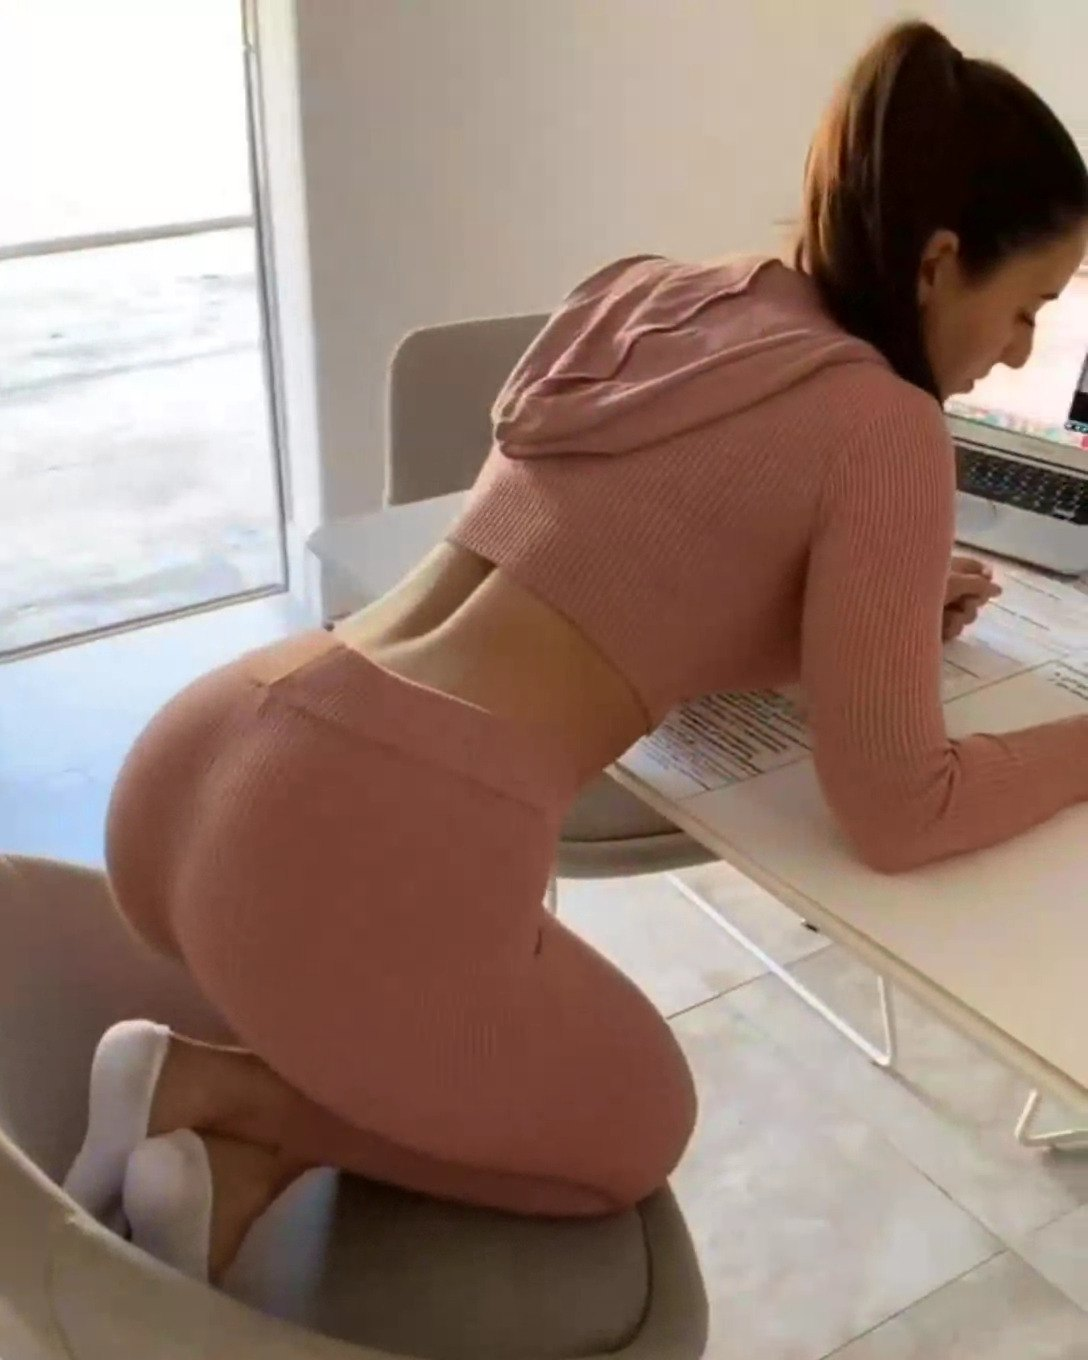 Anie Filipino Porn angie varona want a quick fuck while studying - fapgrams